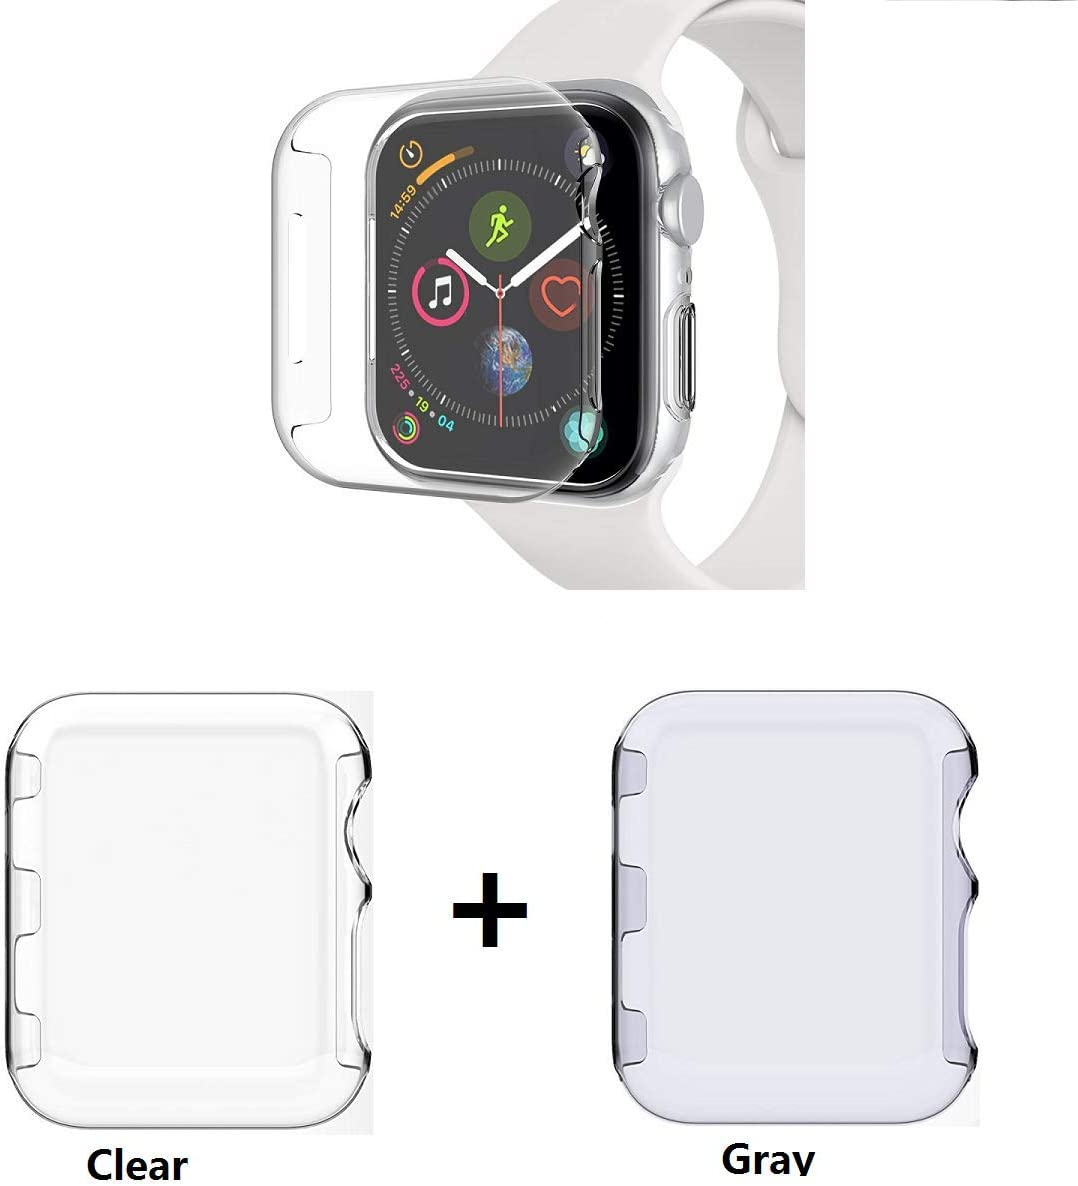 Sfmn PC Hard Clear Watch Case Compatible/Replacement for Apple Watch Series 4 44MM / iWatch 4 Case,Bumper Ultra-Slim Cystal Clear Full Coverage All-Around PC Hard Cover Case (PC Clear+Gray, 44MM)